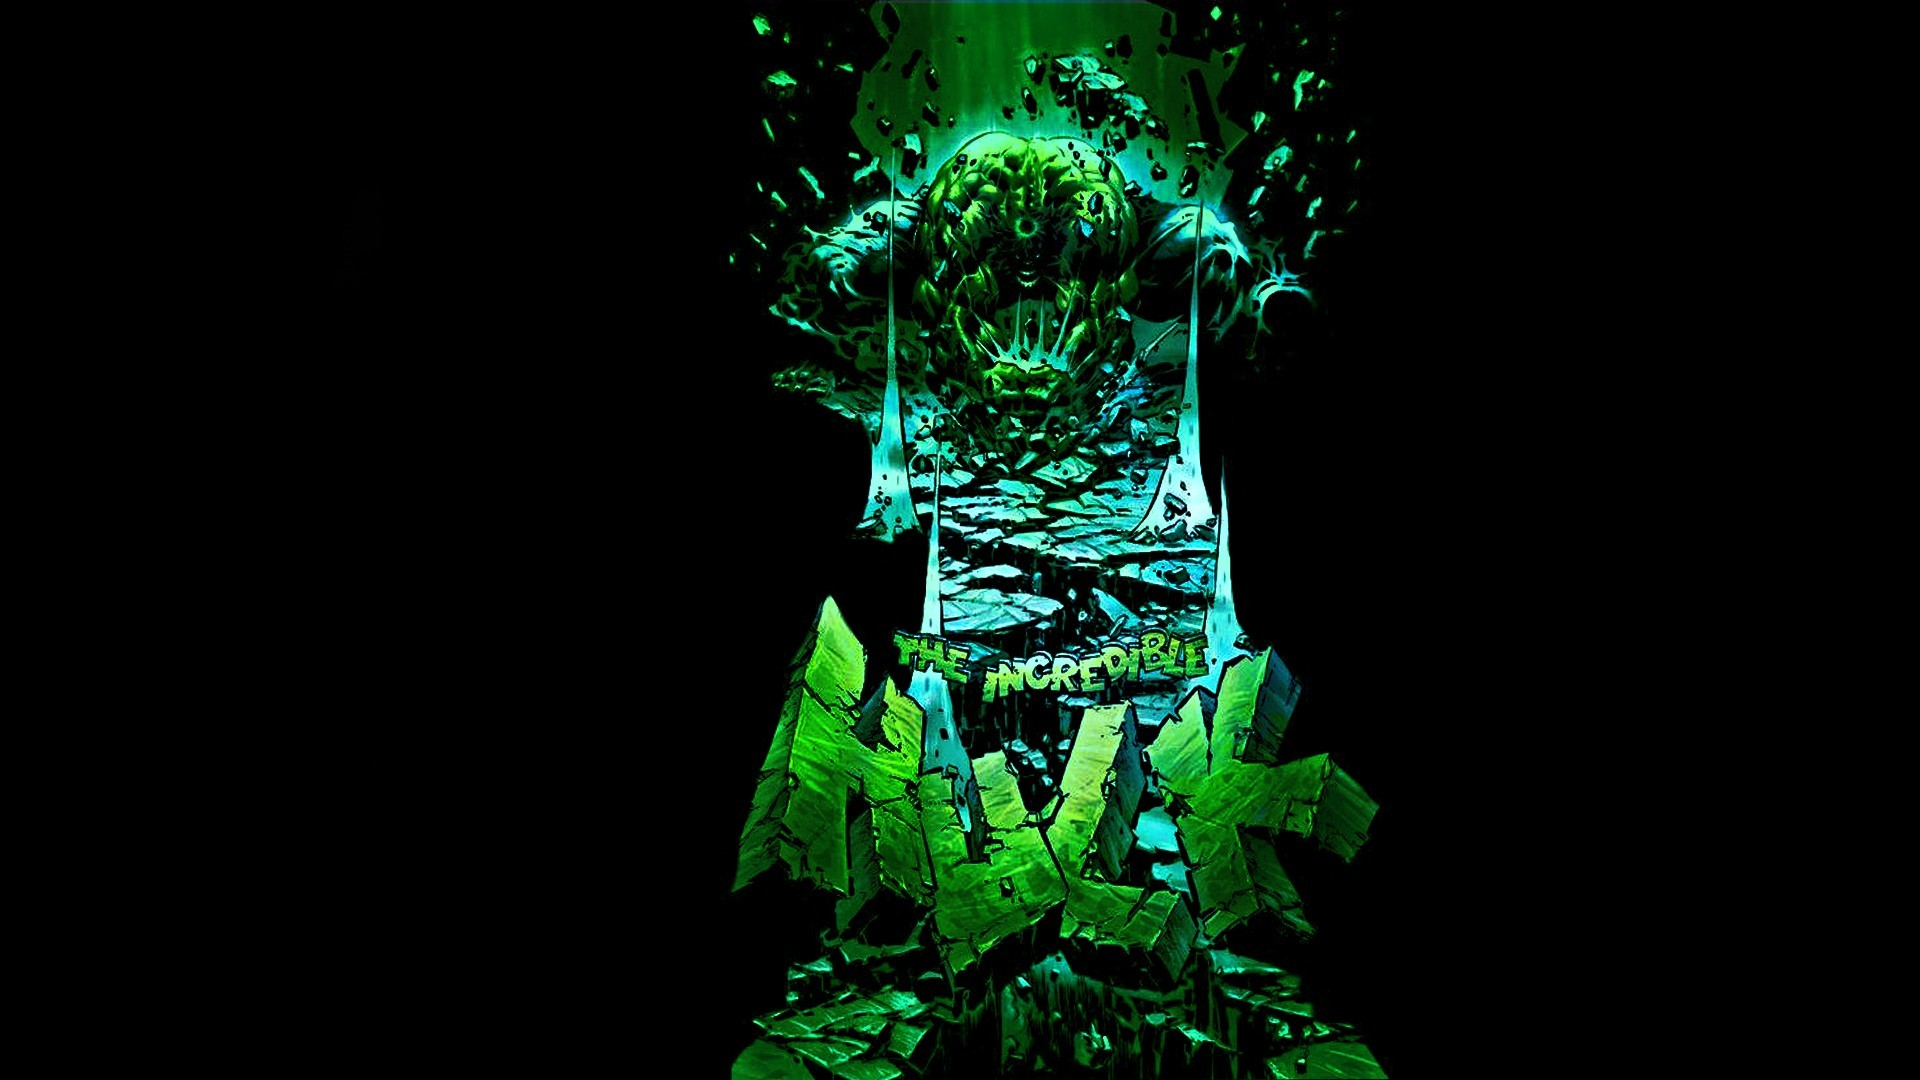 Awesome Incredible Hulk Images Hd Wallpapers And Backgrounds 192754 .